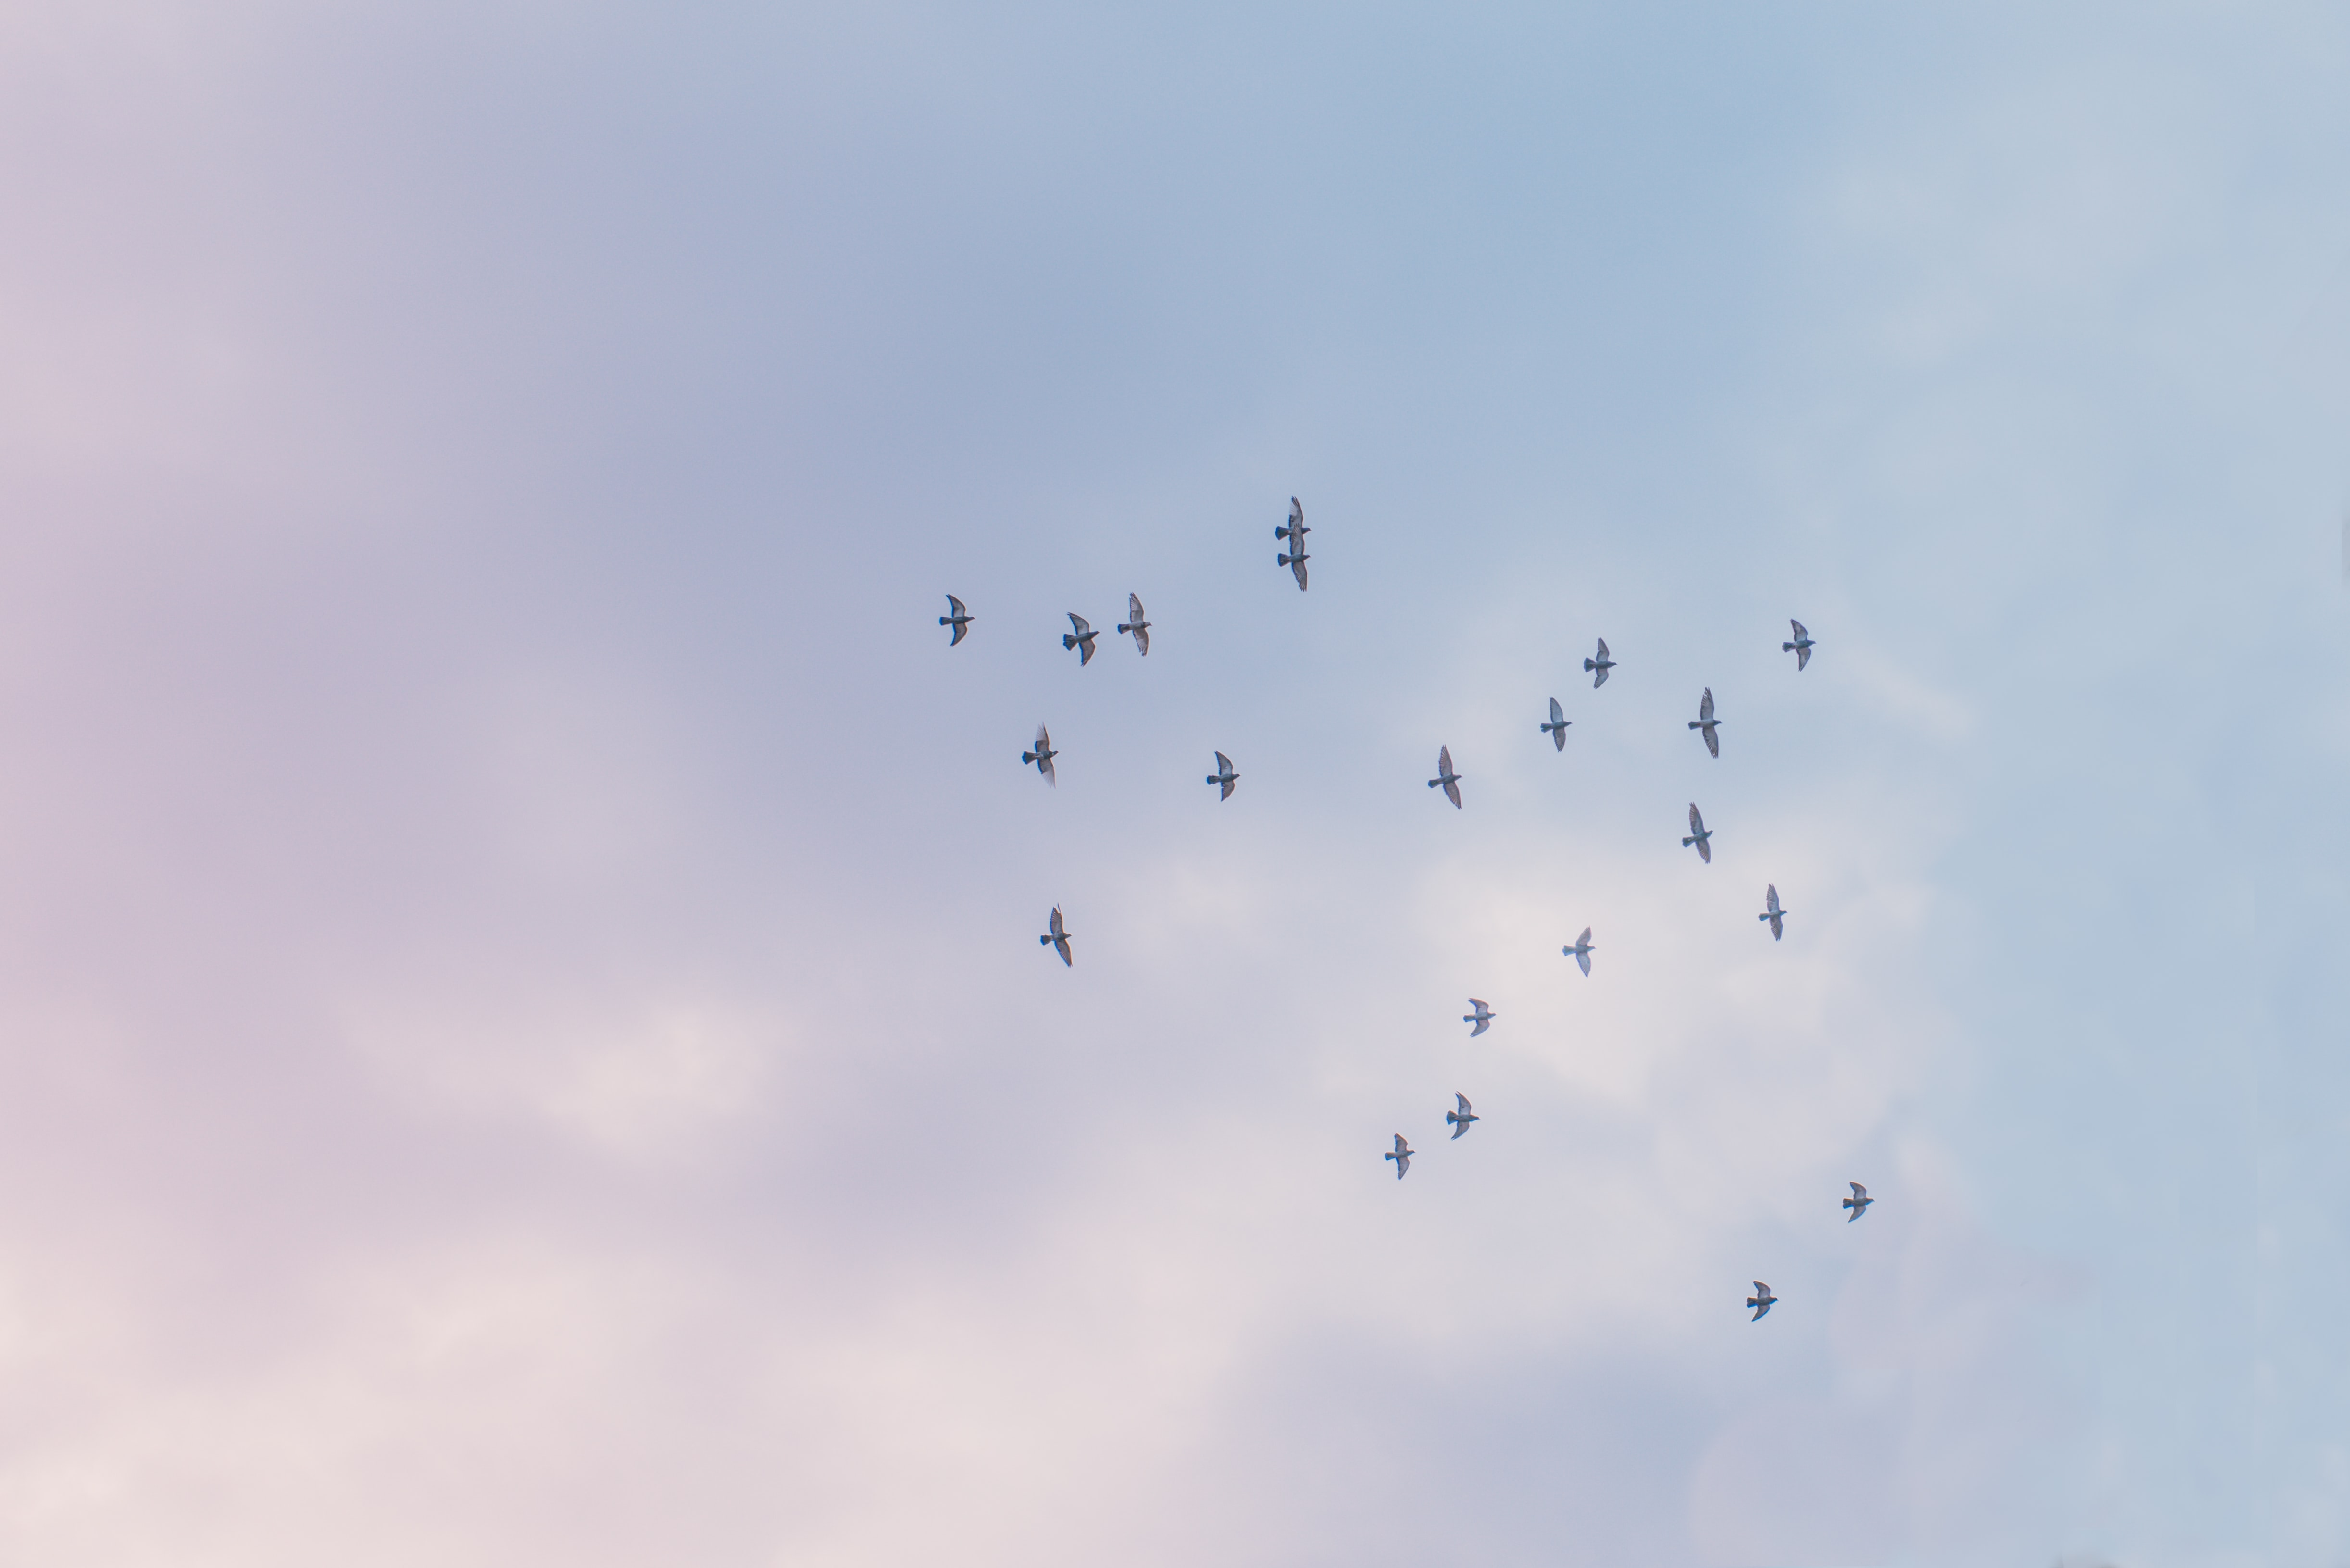 birds flying under white sky